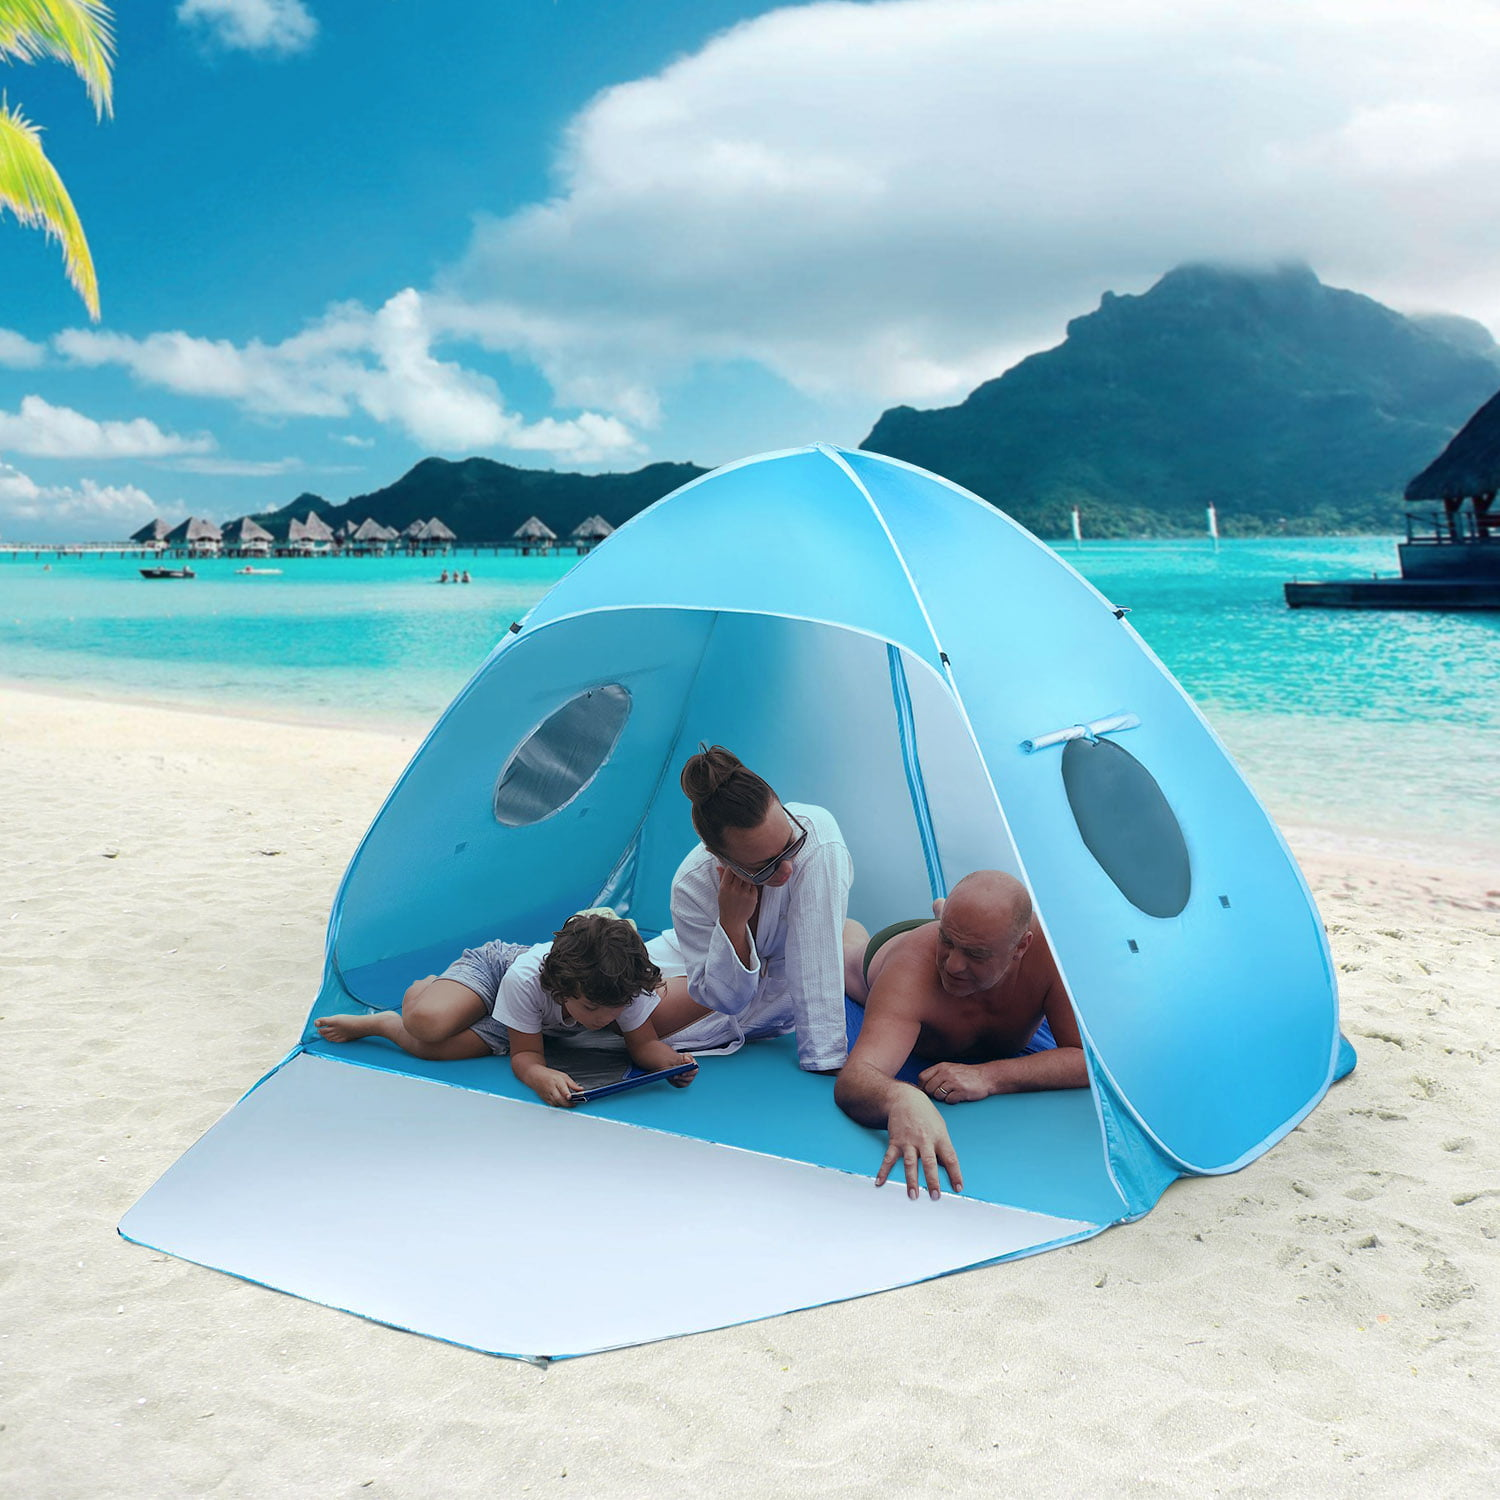 iCorer Extra Large Pop Up Instant Portable Outdoors 2-3 Person Beach Cabana Tent Sun Shade Shelter Sets Up in Seconds,... by iCorer